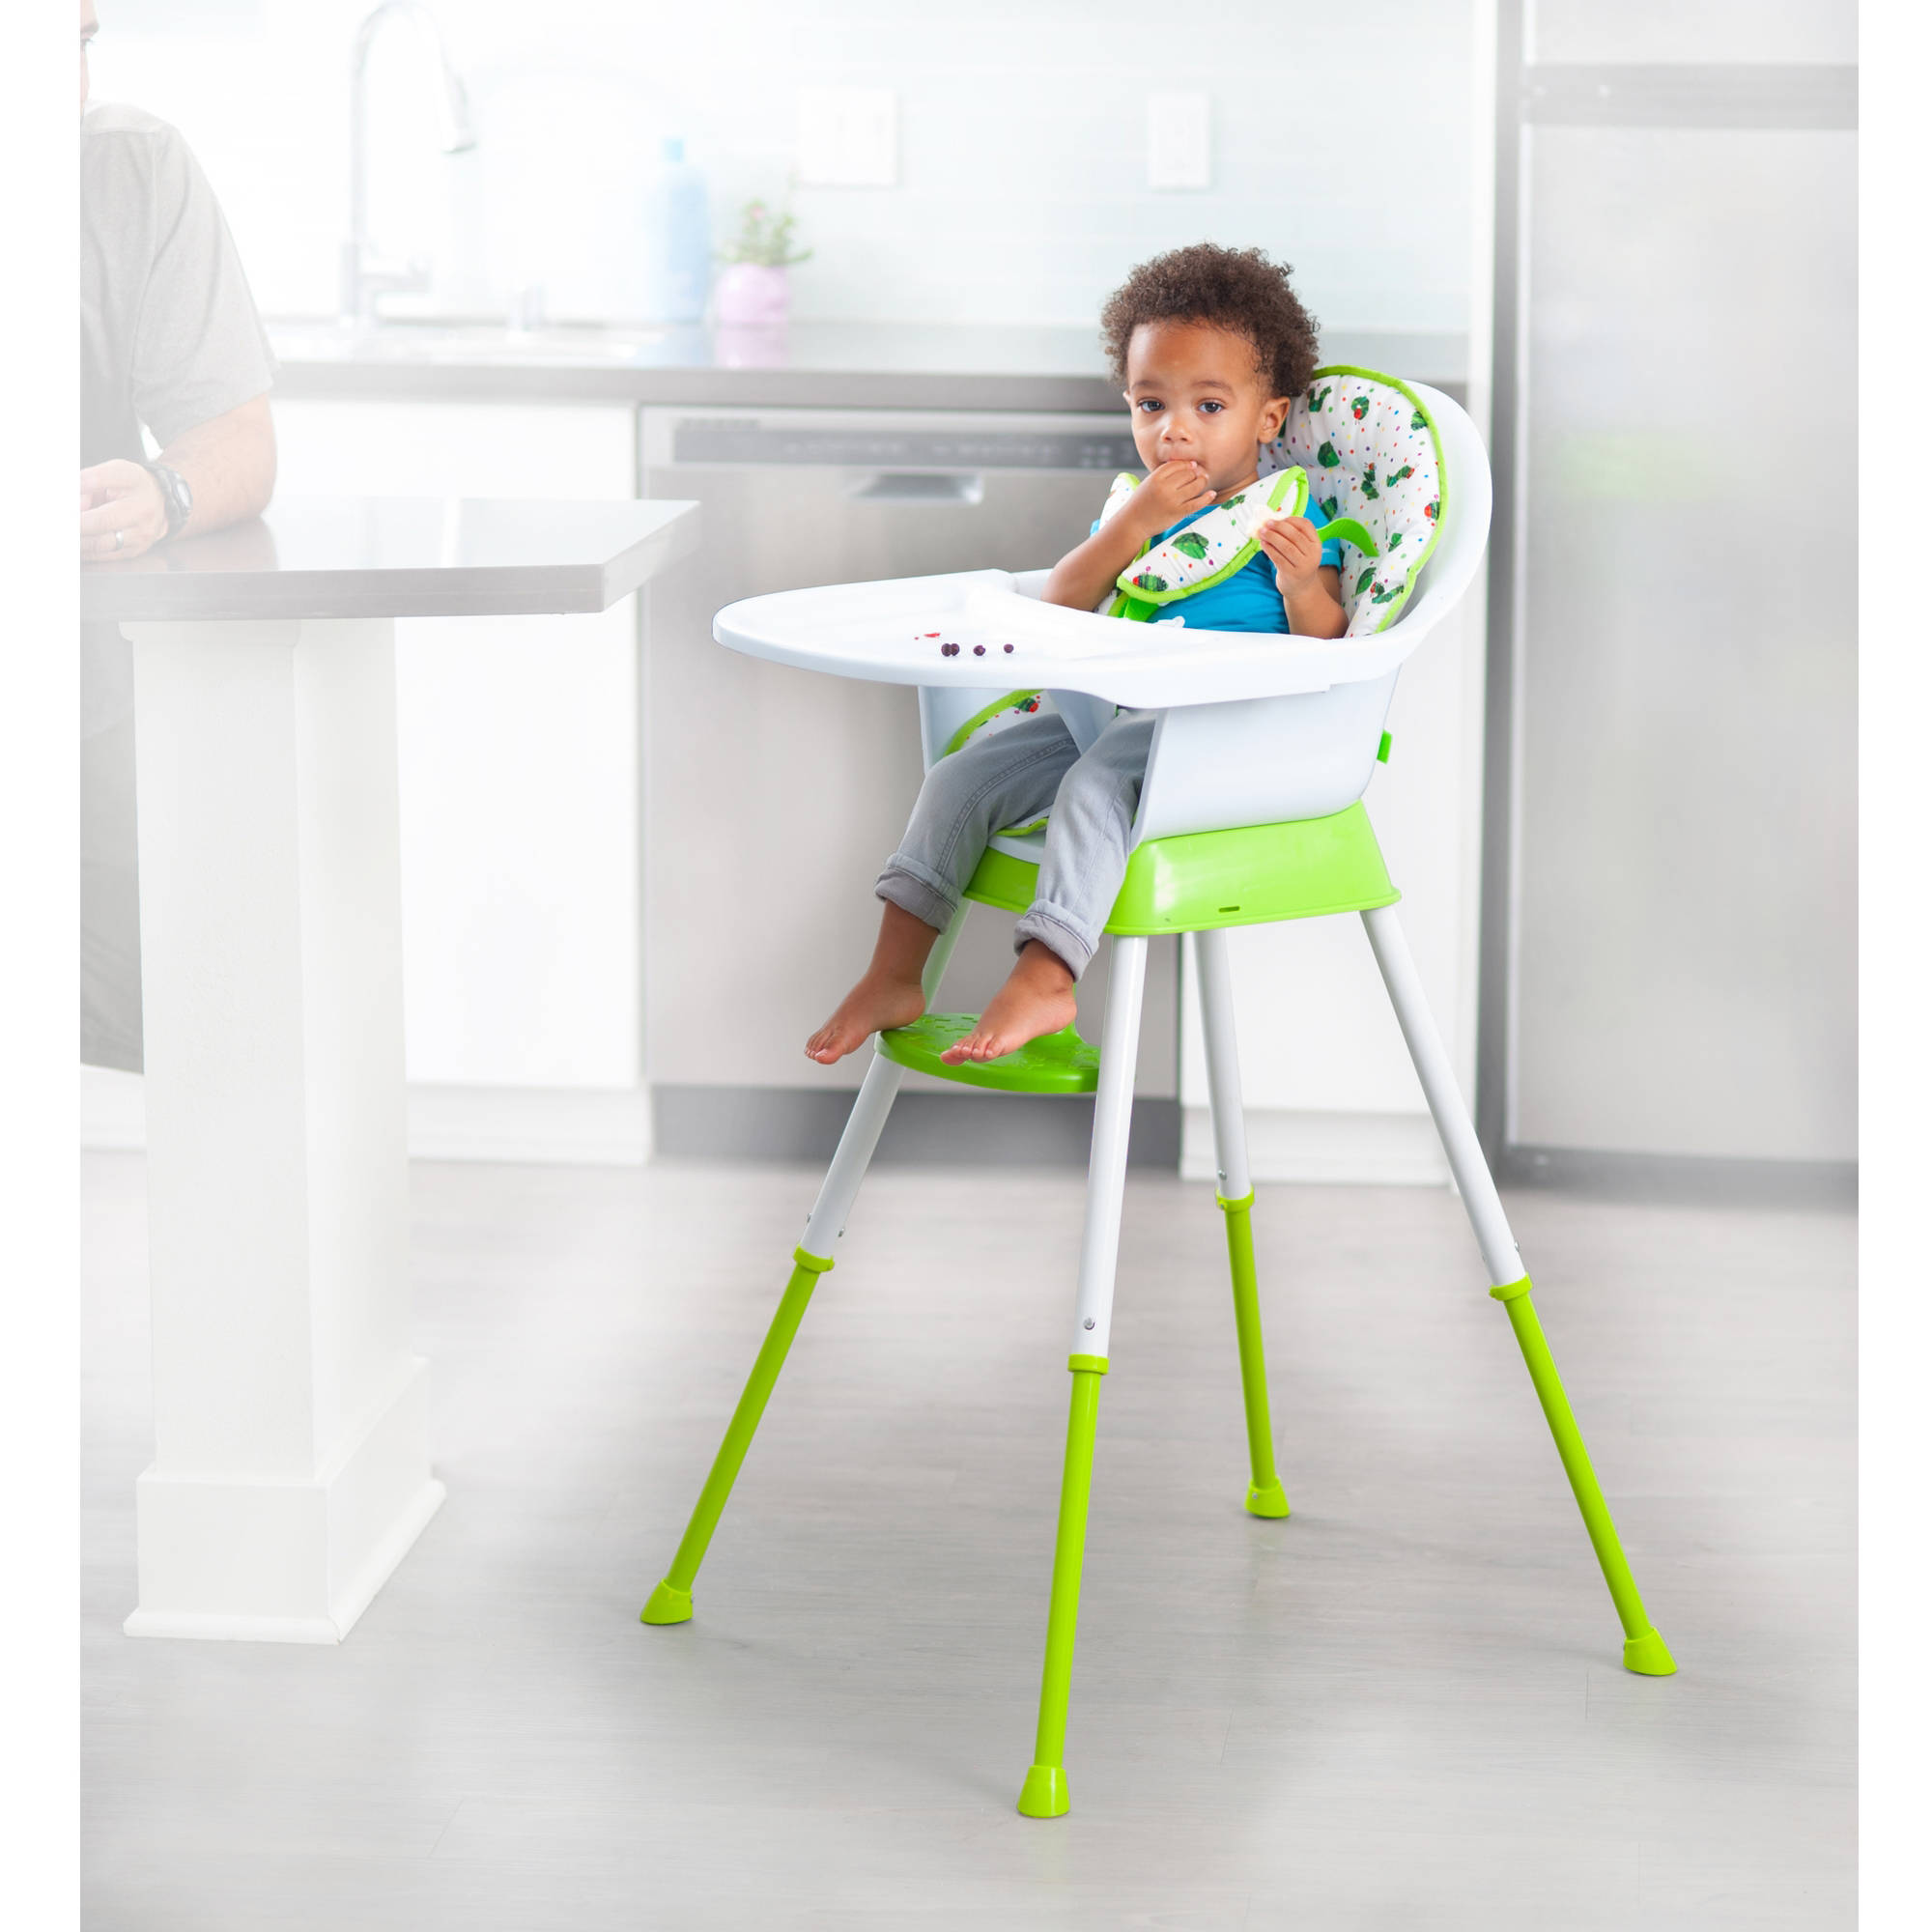 The Very Hungry Caterpillar Happy and Hungry 3 in 1 High Chair, Leaves